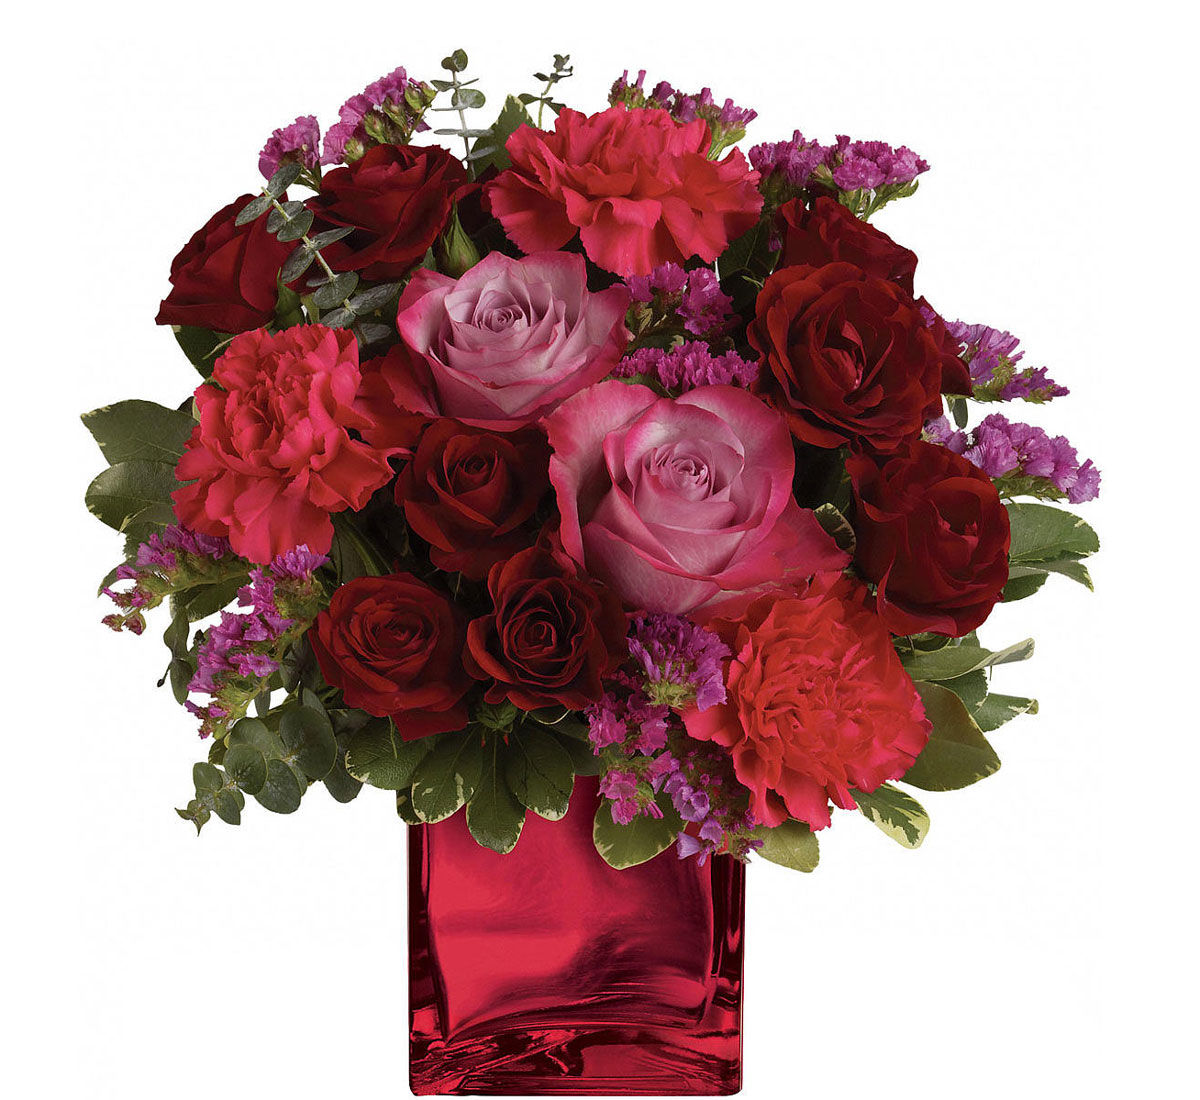 Popular Flowers In Canada: Flower Delivery By Canada Flowers · FTD® Flowers